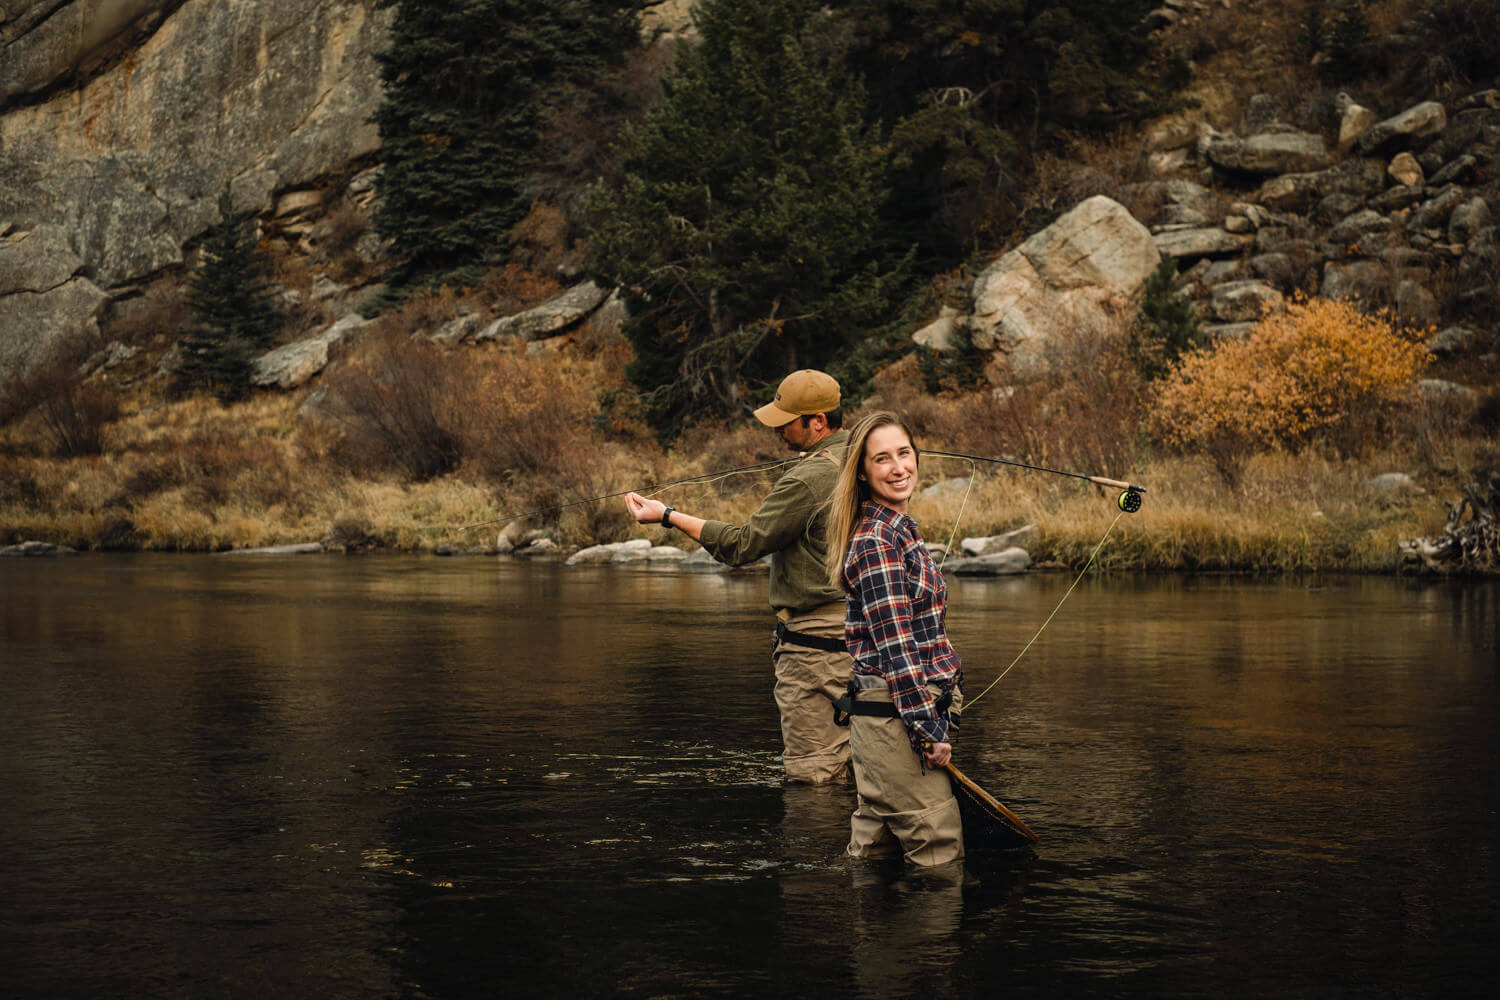 Man and woman anglers in Eleven Mile Canyon River.